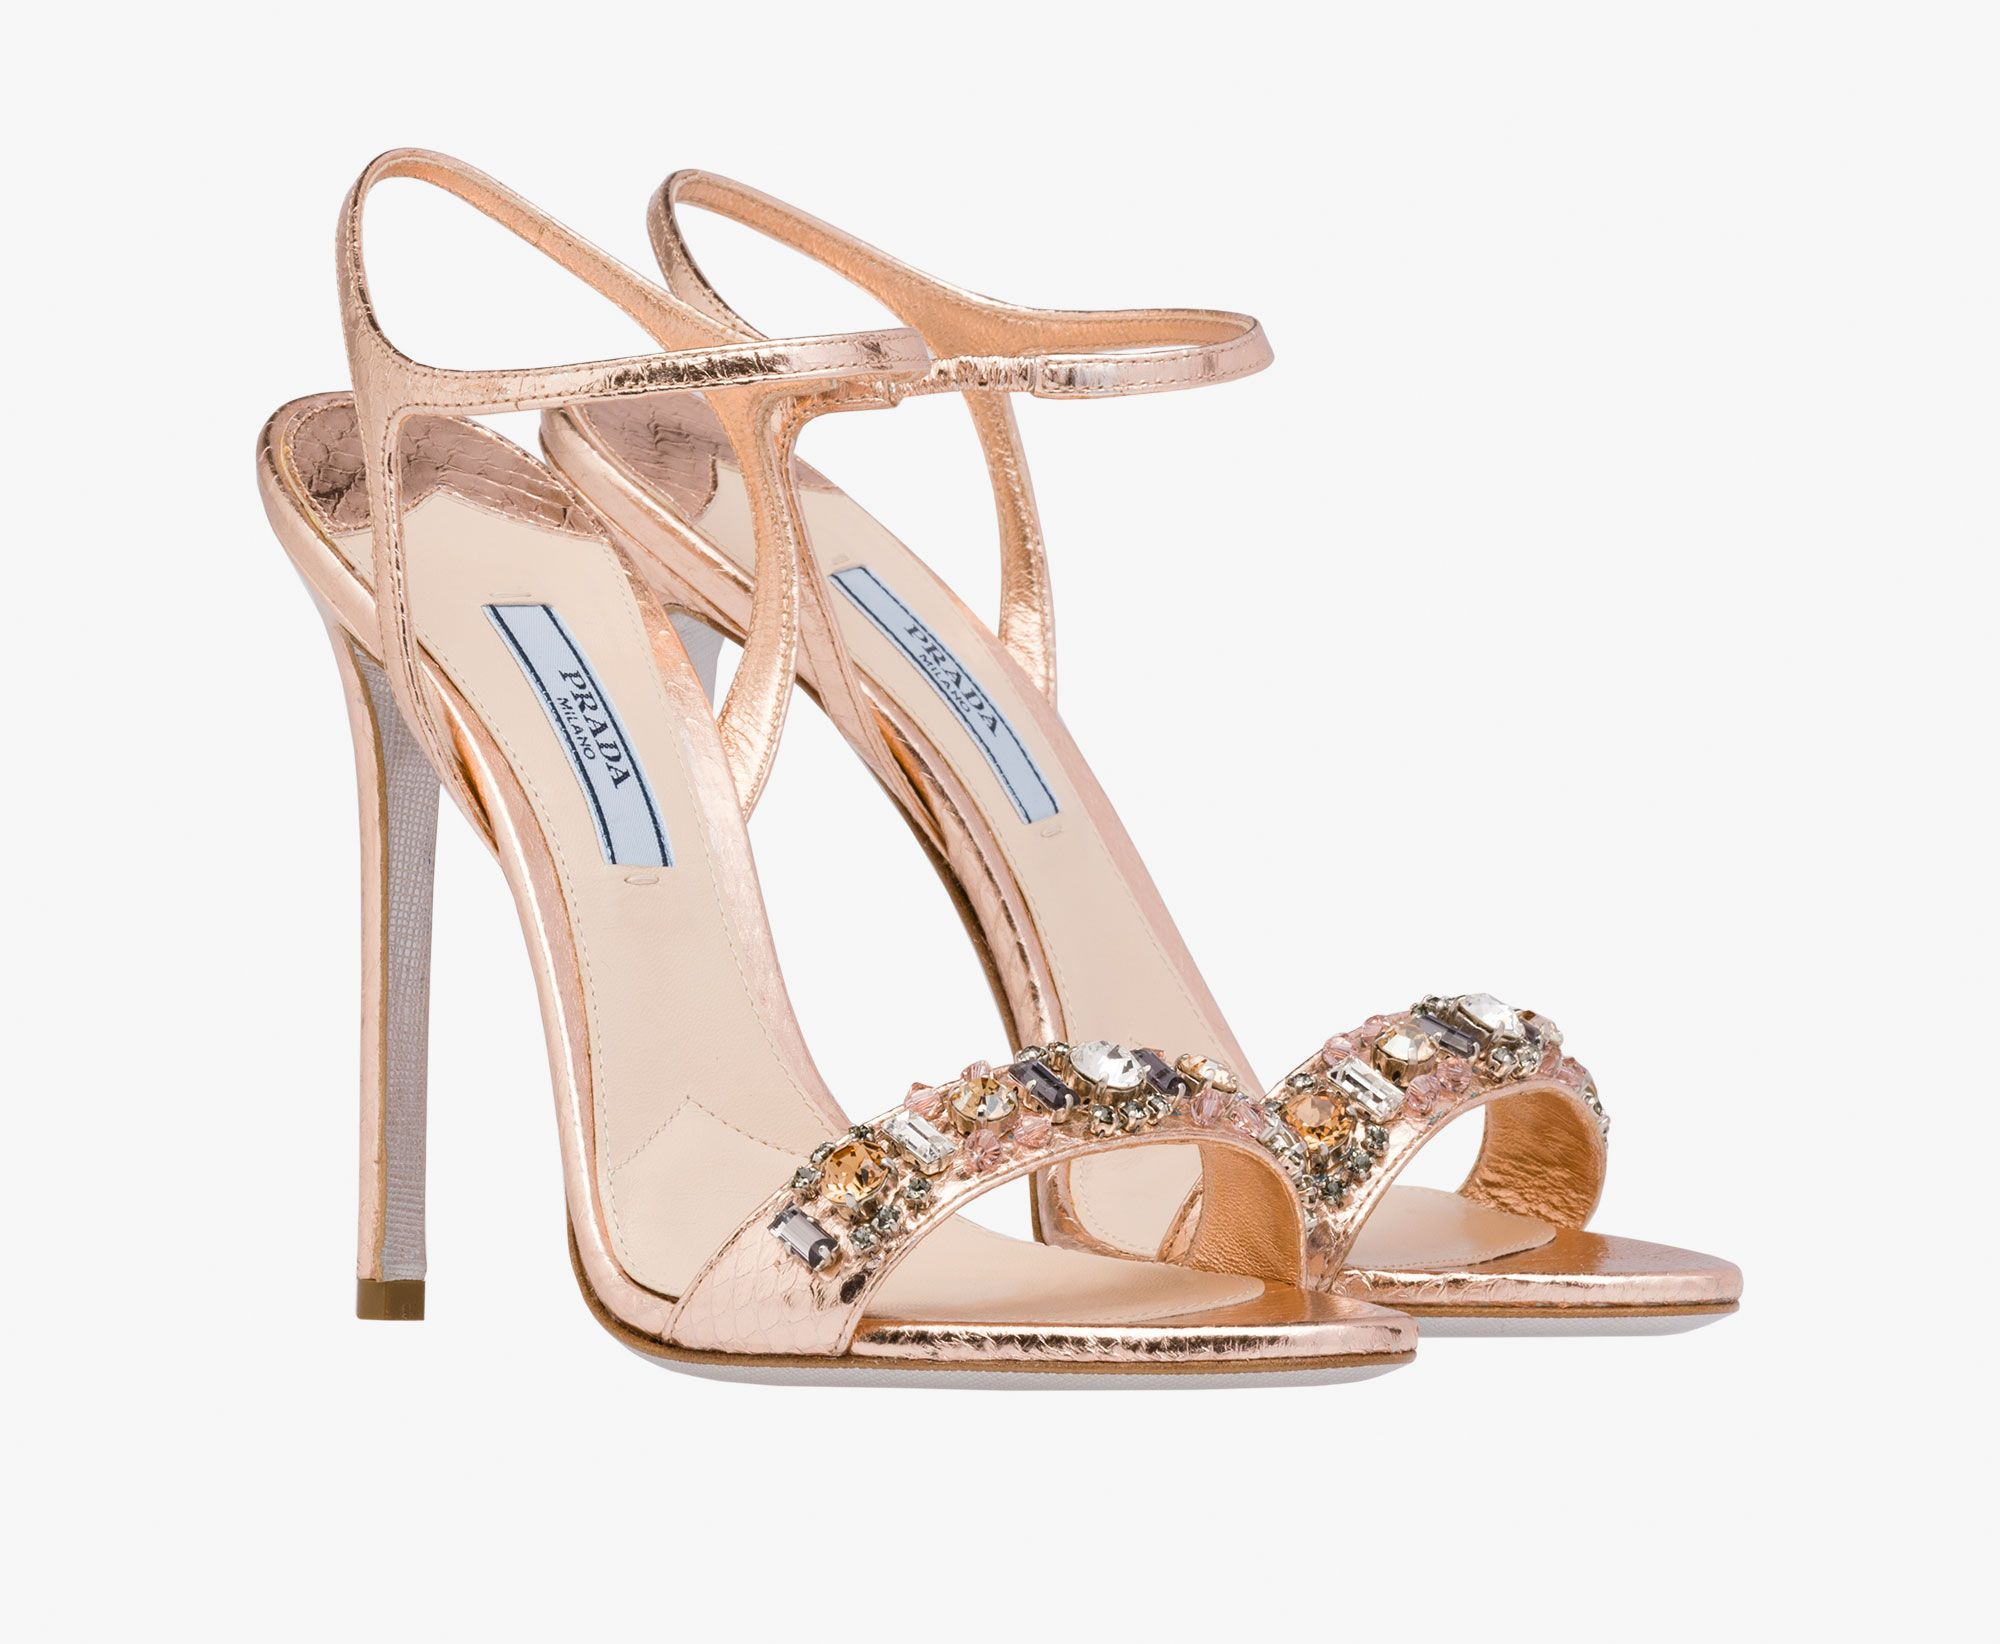 Prada Jewelled Sandals With Crystals